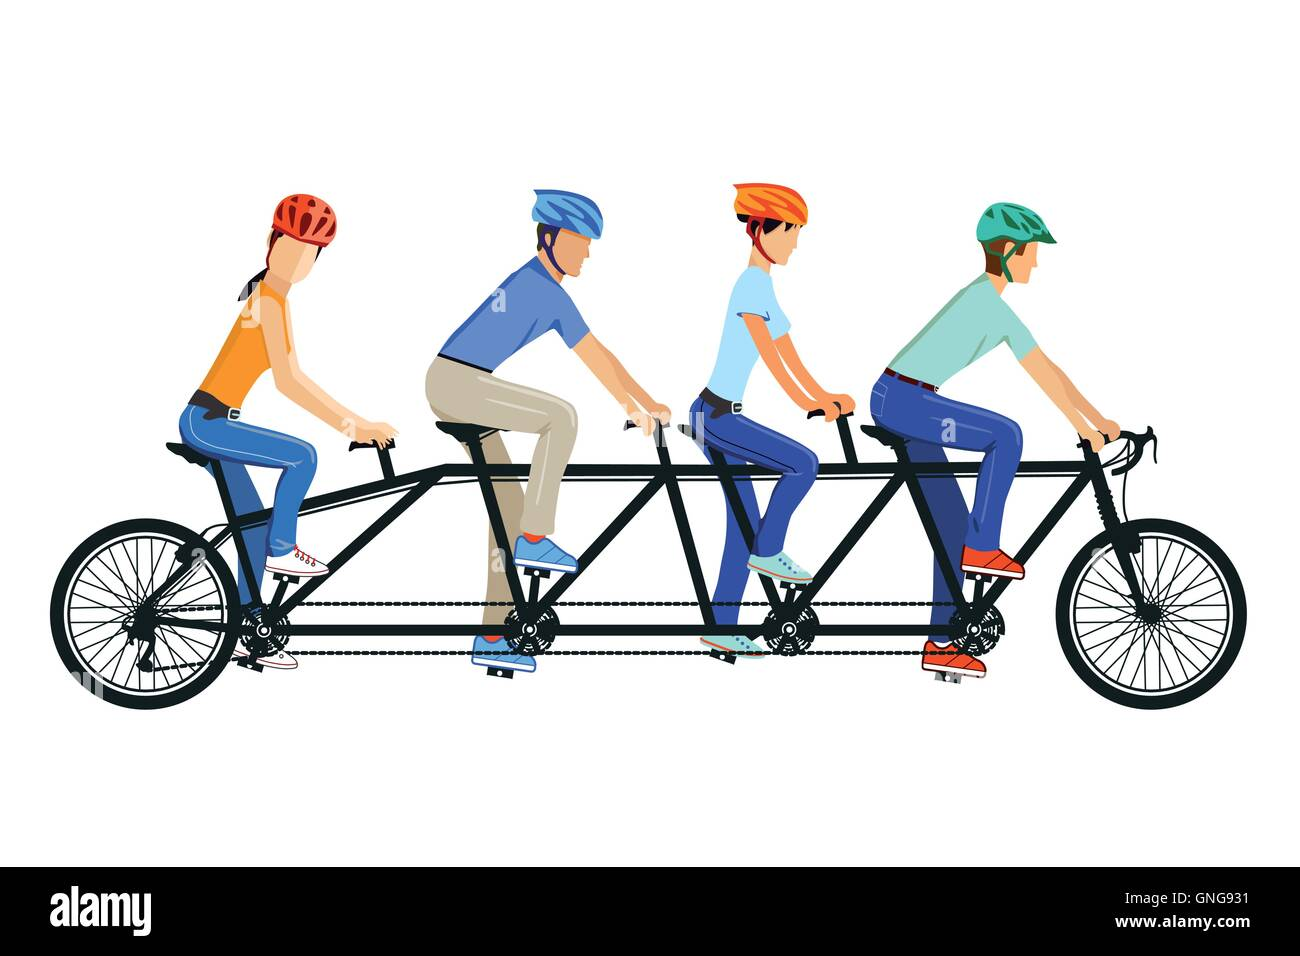 Cycling Tandem Bicycle - Stock Image